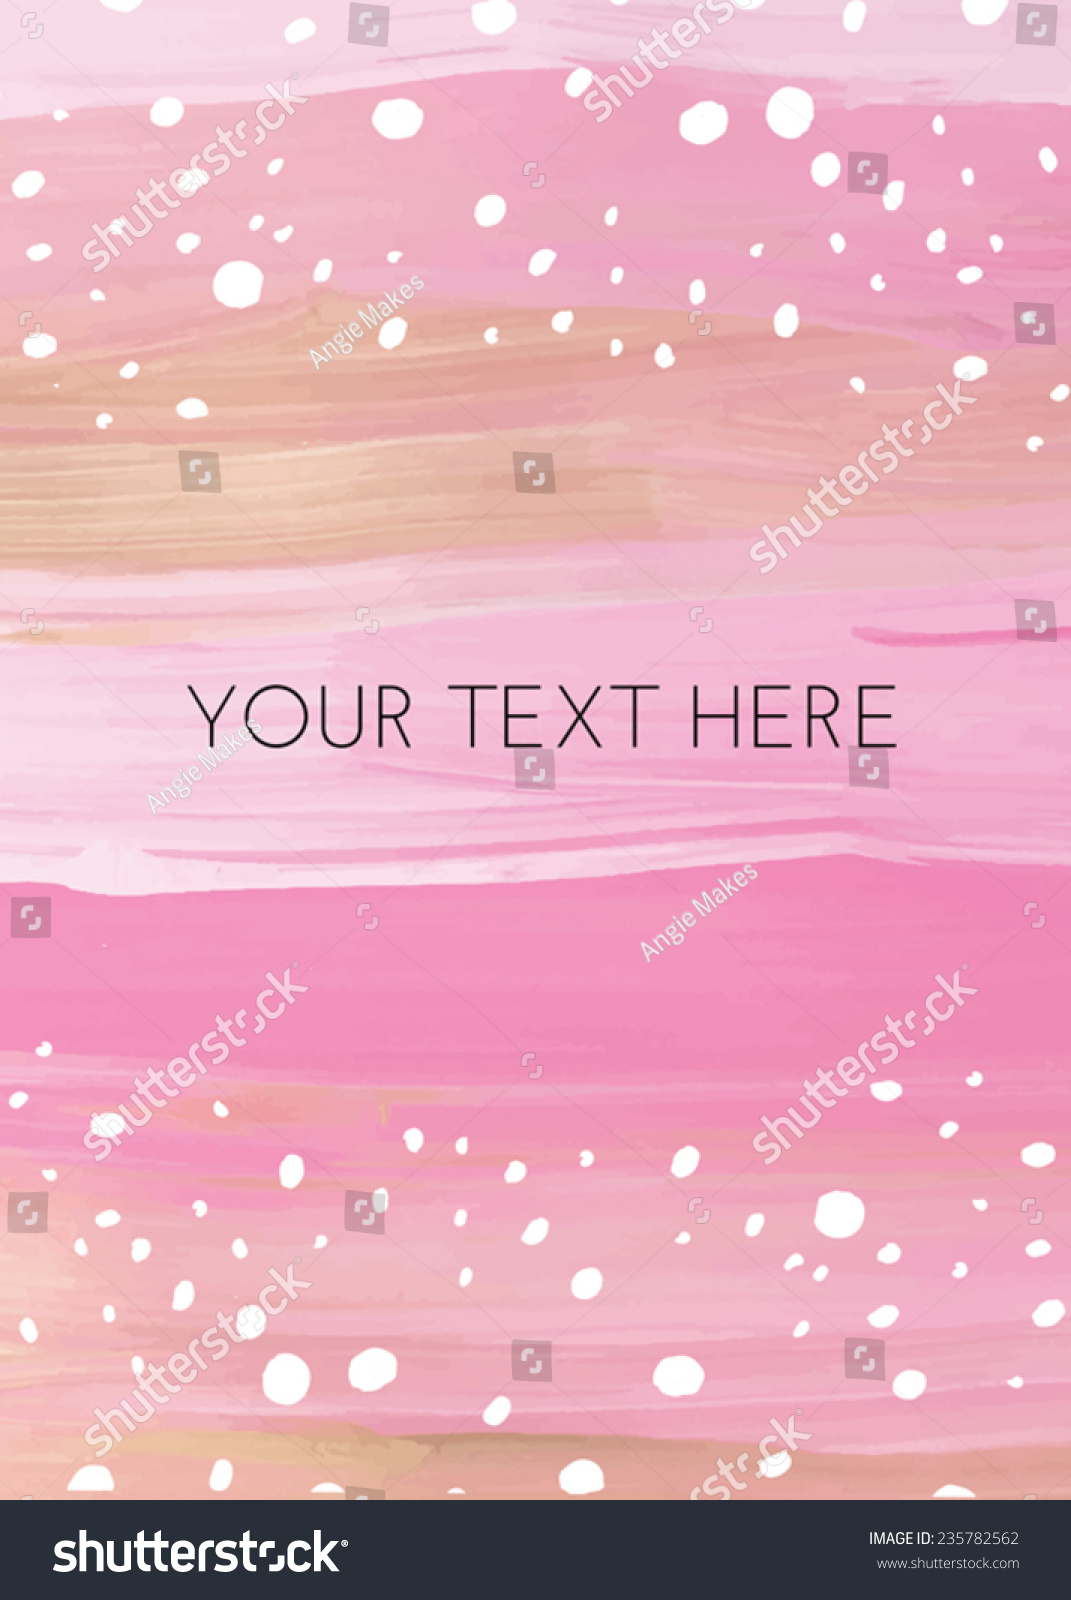 cute girly painted pink gold invitation stock vector royalty free